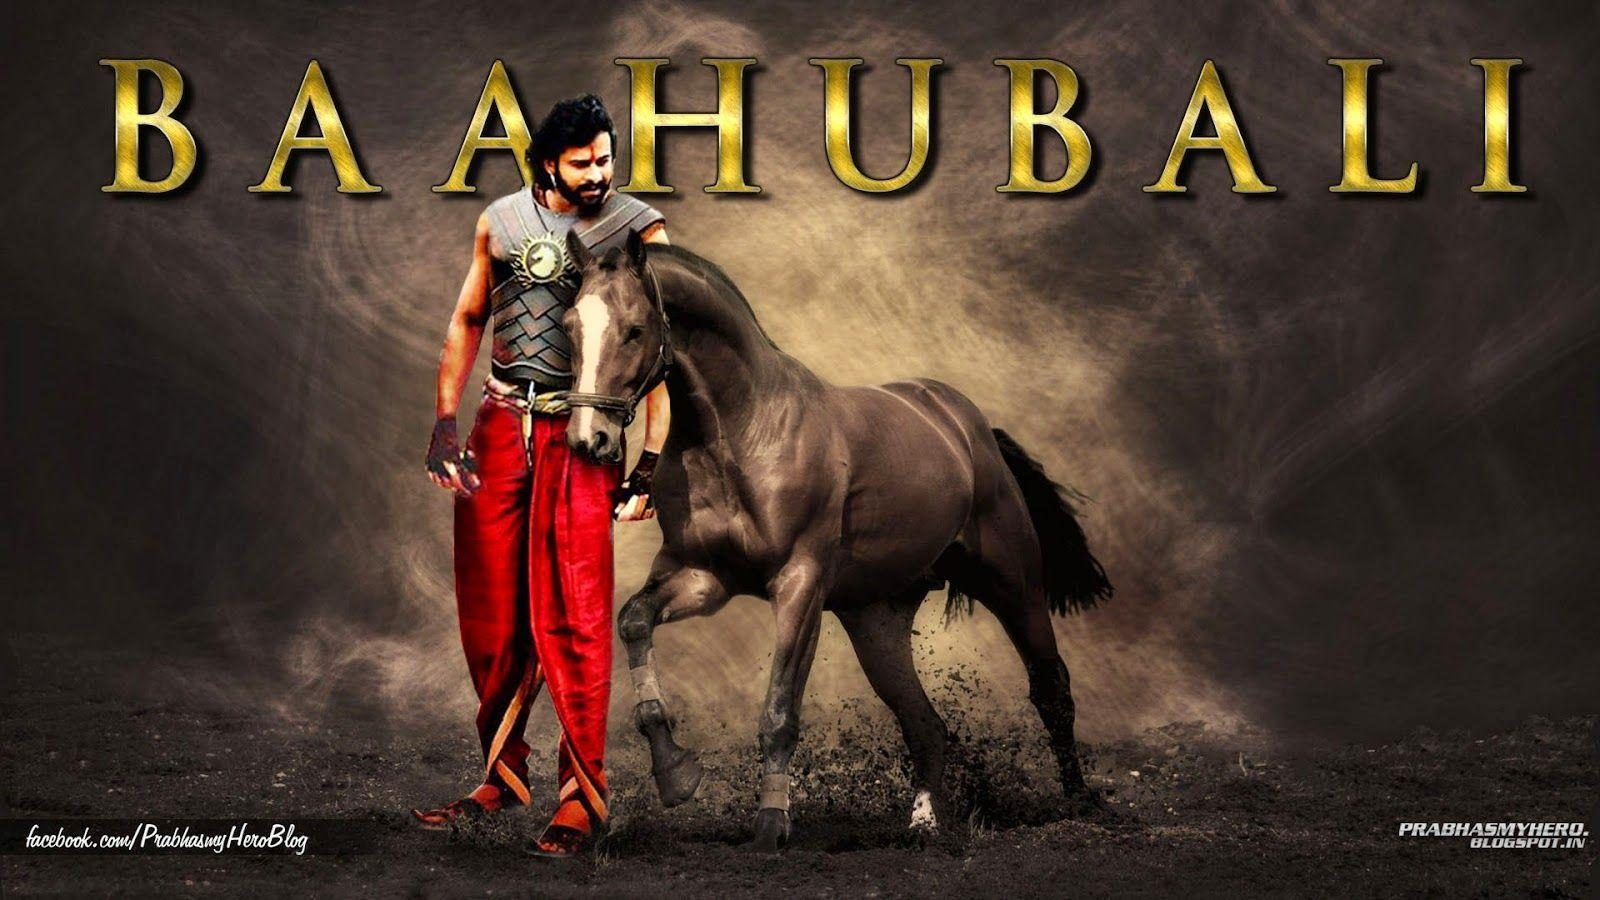 Wallpaper download bahubali 2 - Prabhasmyhero Blog Exclusive Baahubali Wallpapers Collection 2